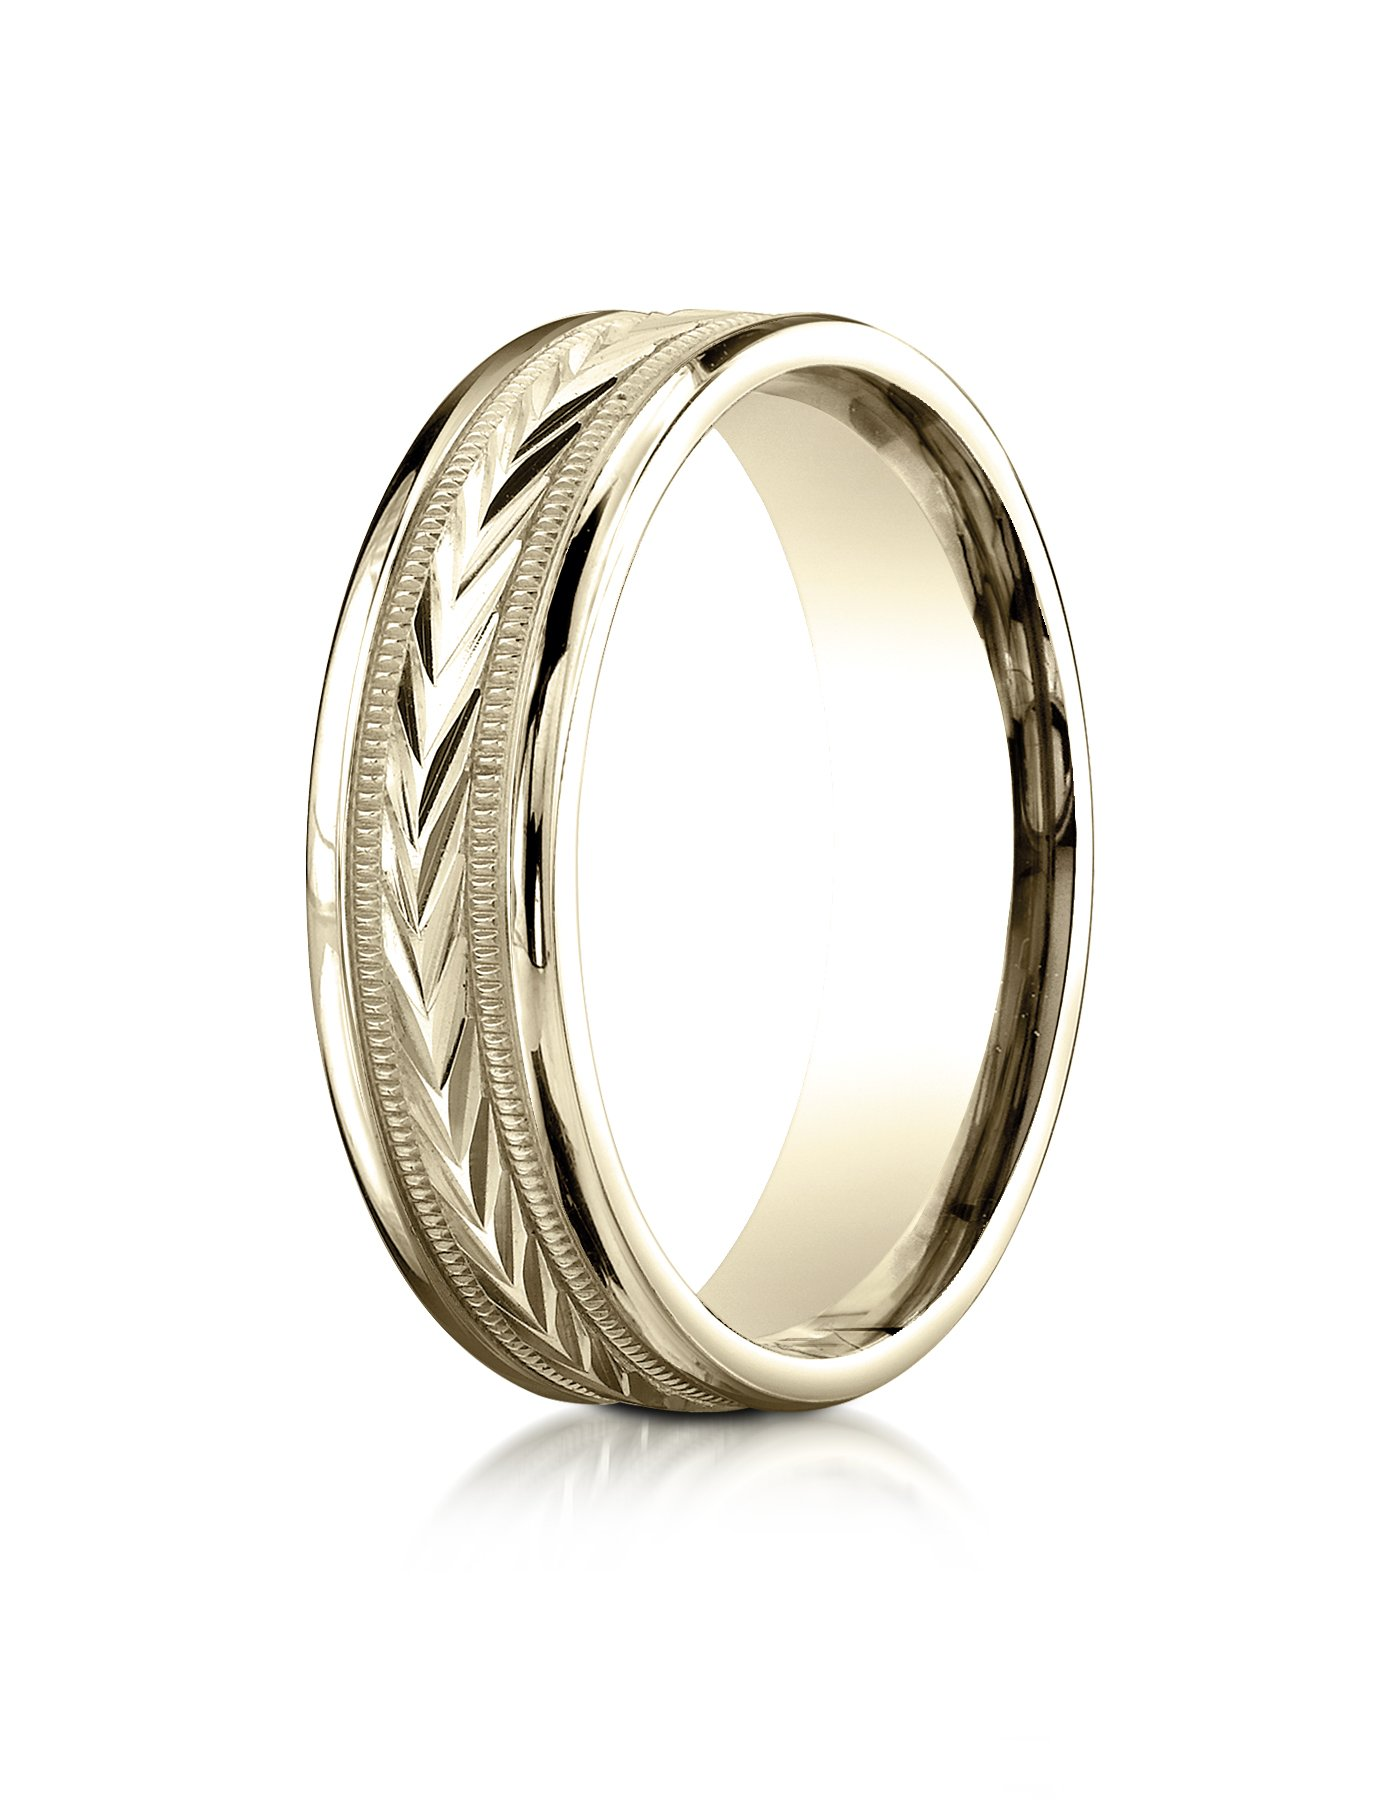 18k Yellow Gold 6mm Comfort-Fit Harvest of Love Round Edge Carved Design Wedding Band Ring for Men & Women Size 4 to 15